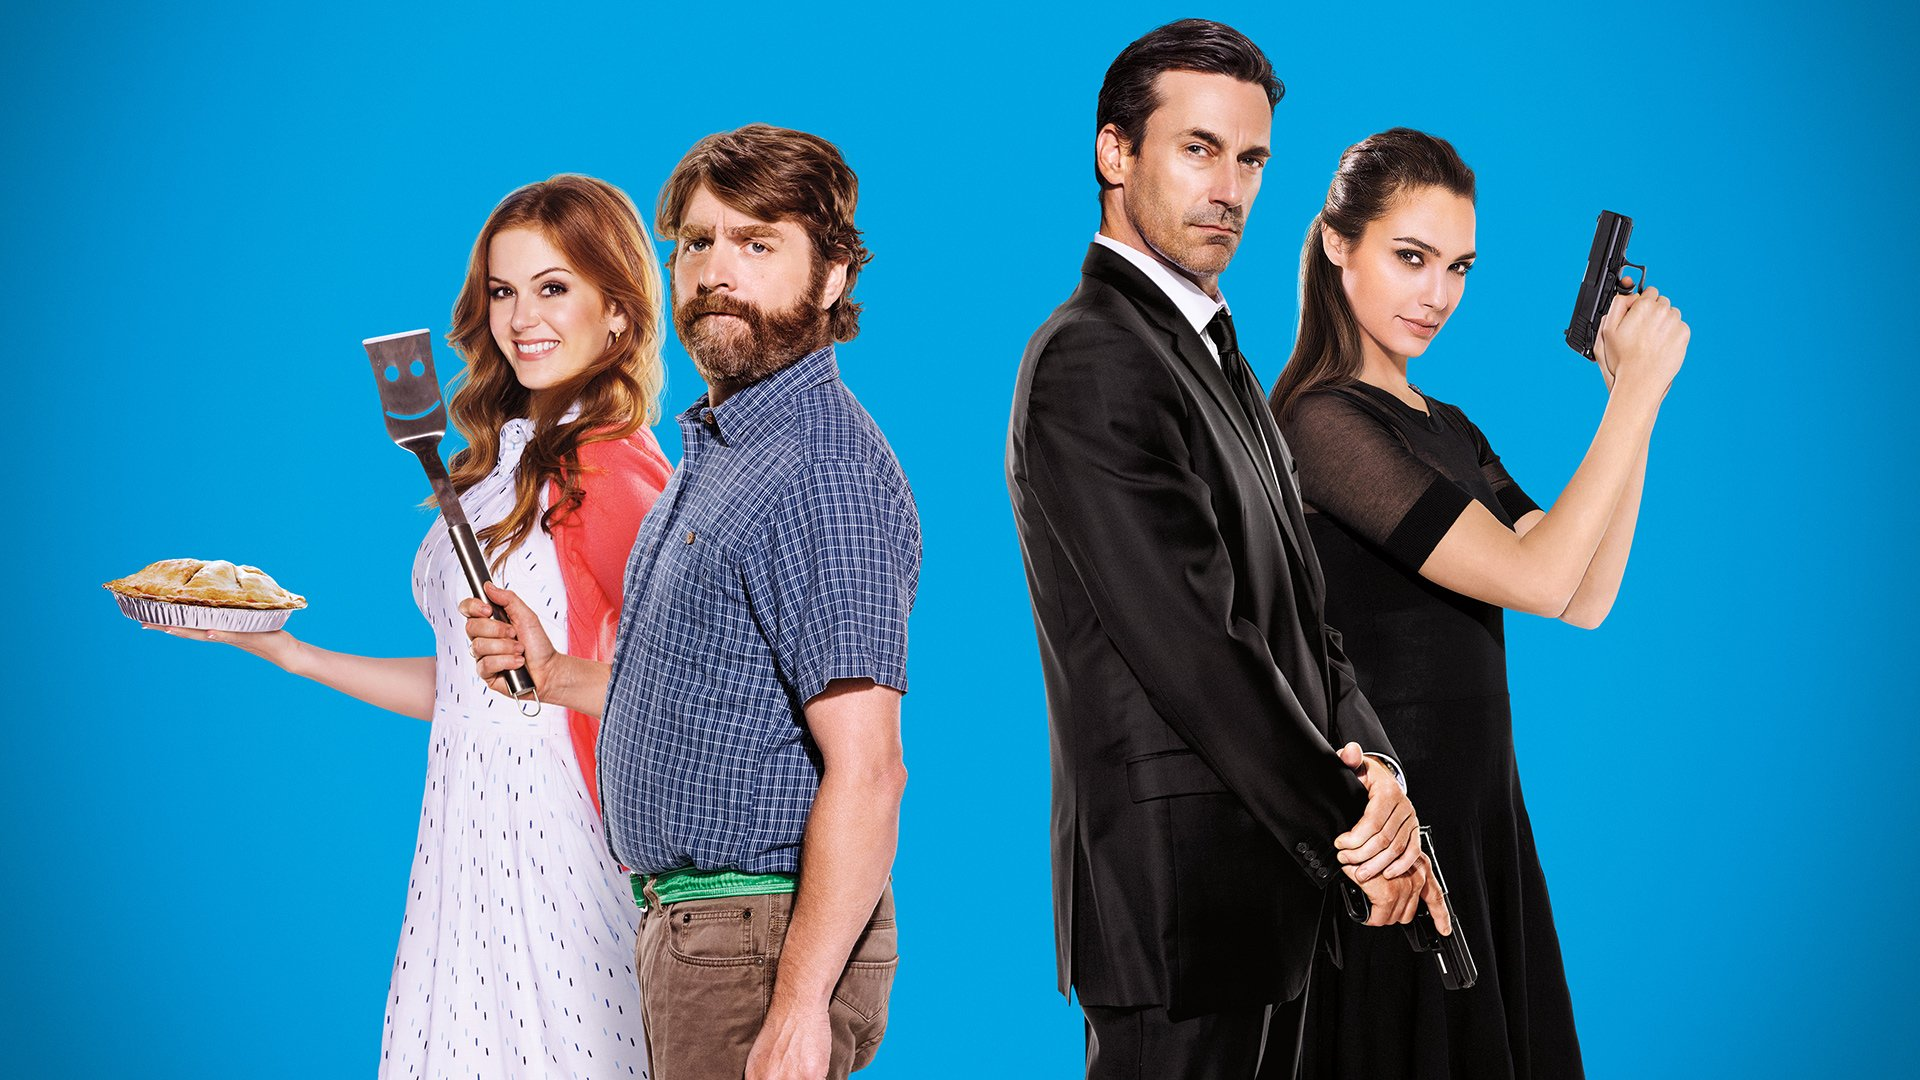 Keeping Up with the Joneses HD Wallpaper | Background ...